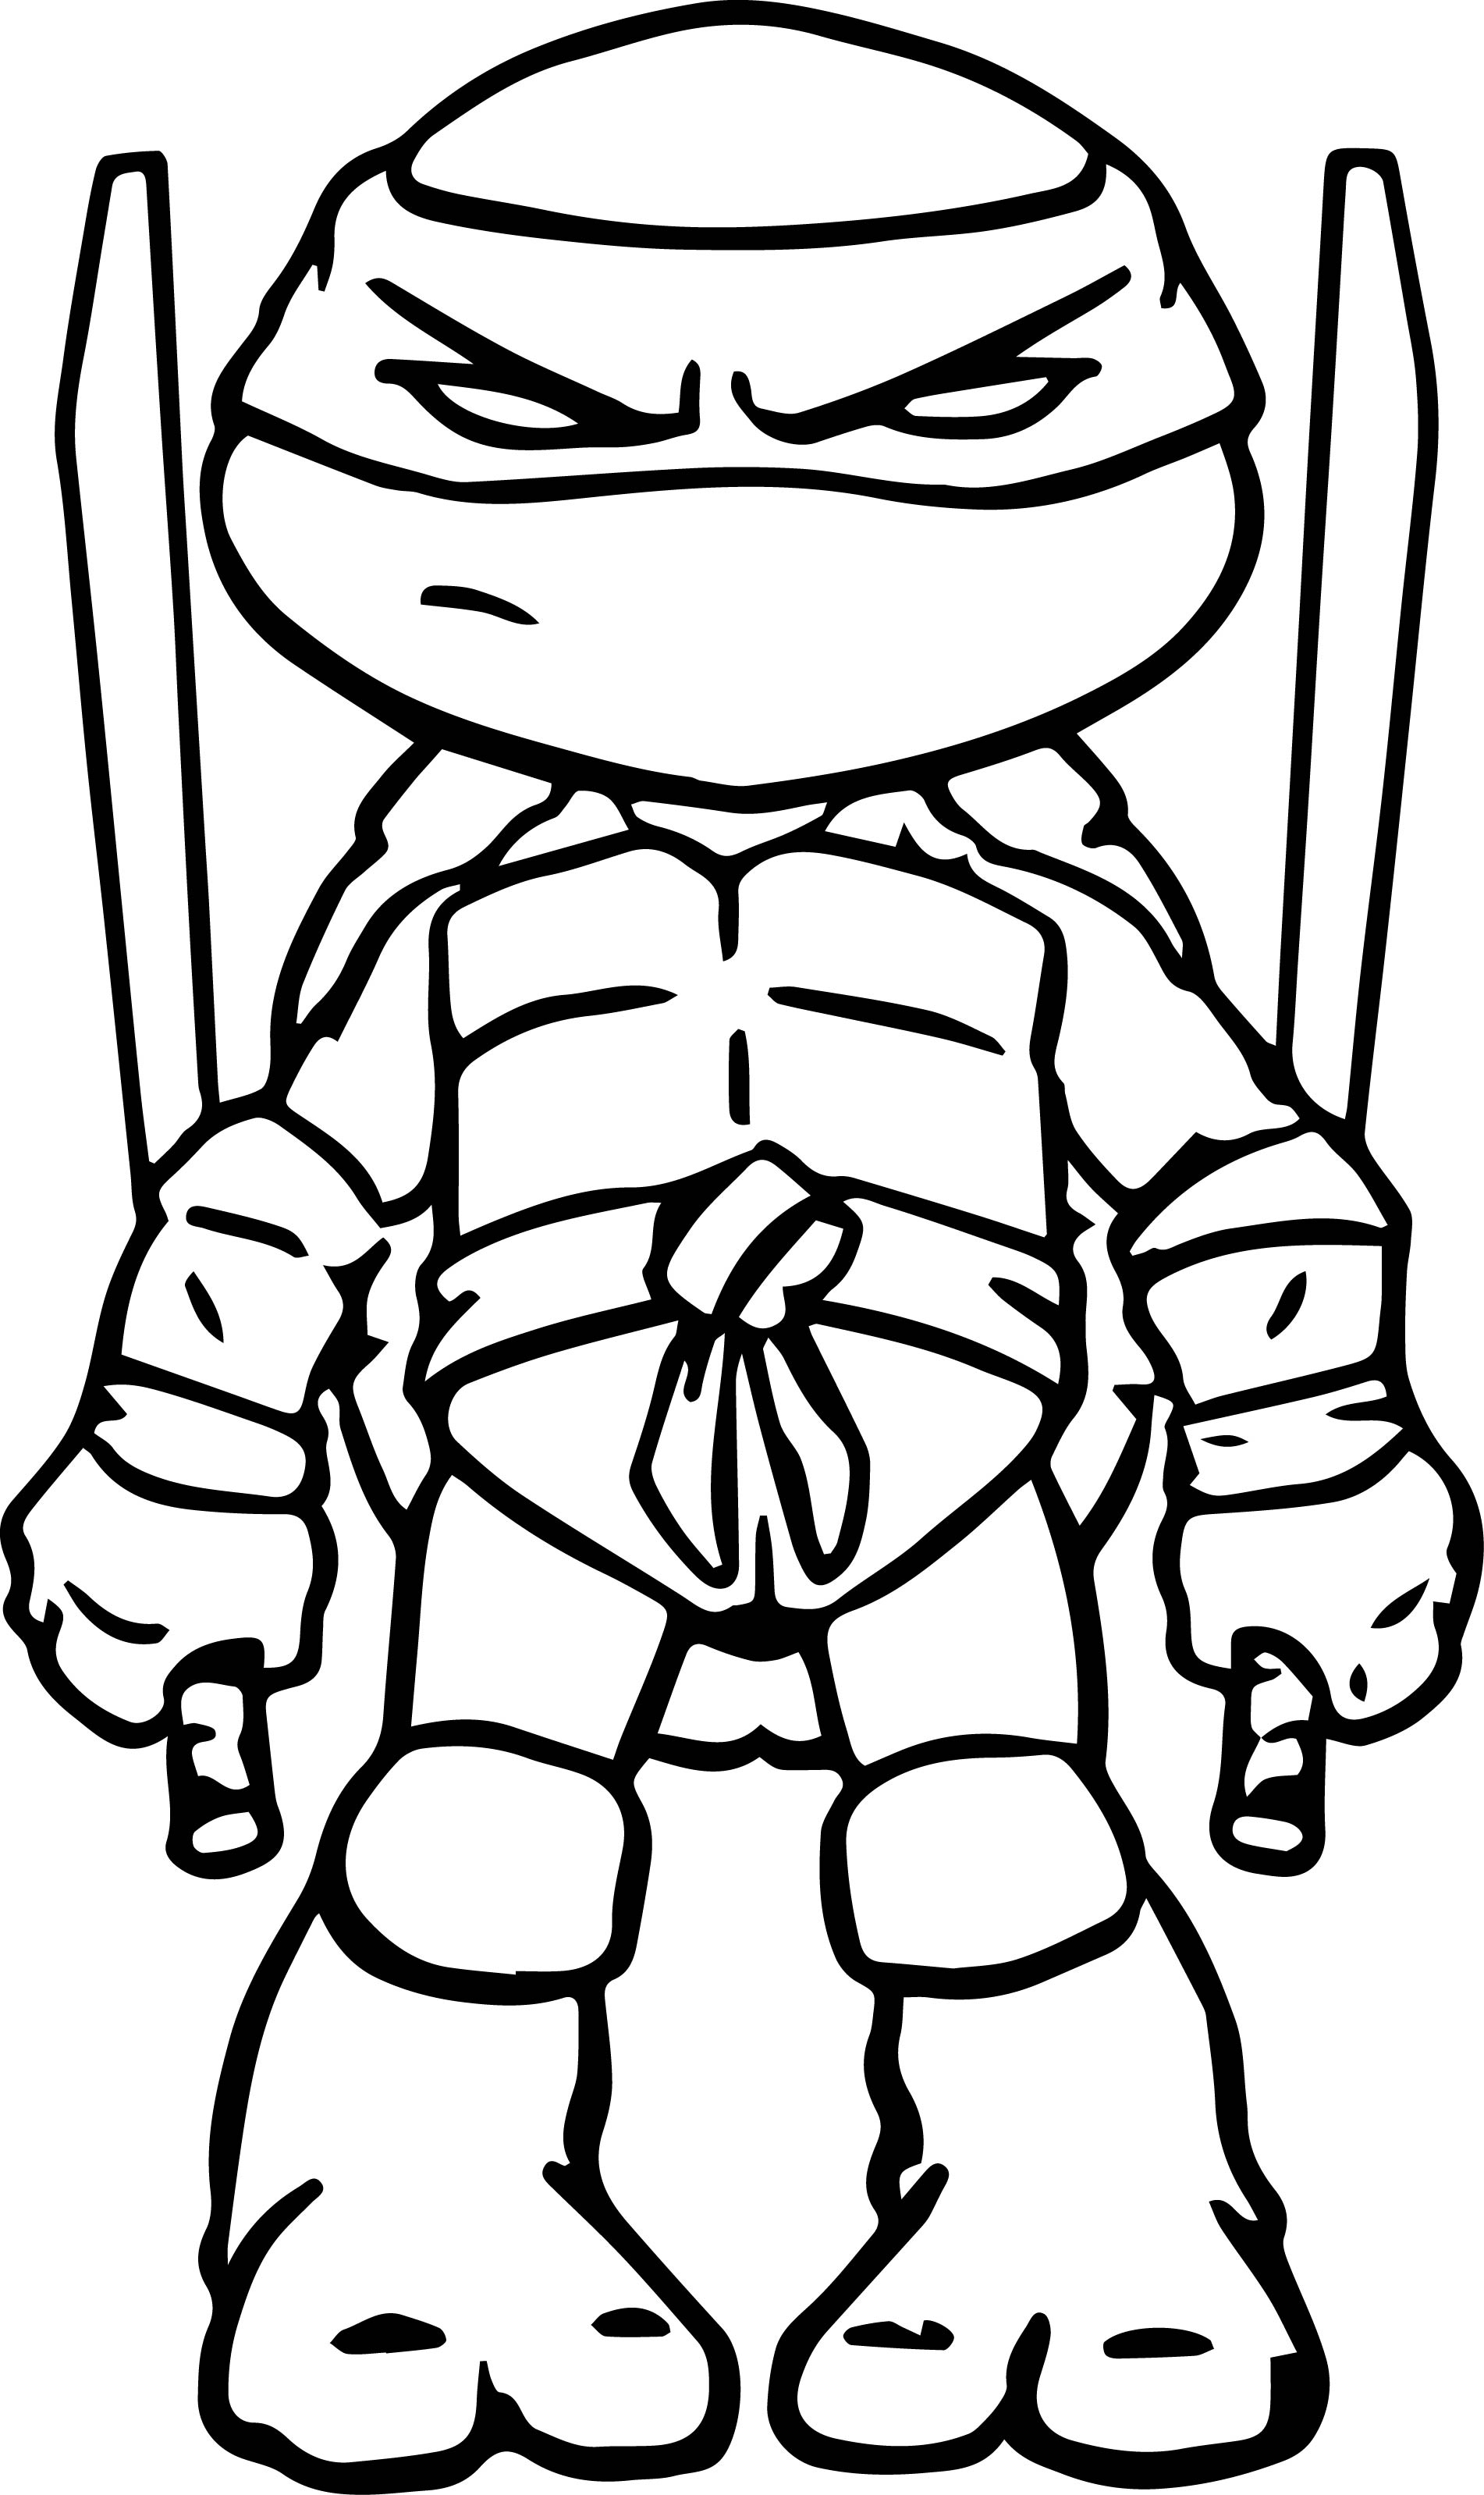 Teenage Ninja Turtle Coloring Pages Download 18o - Save it to your computer